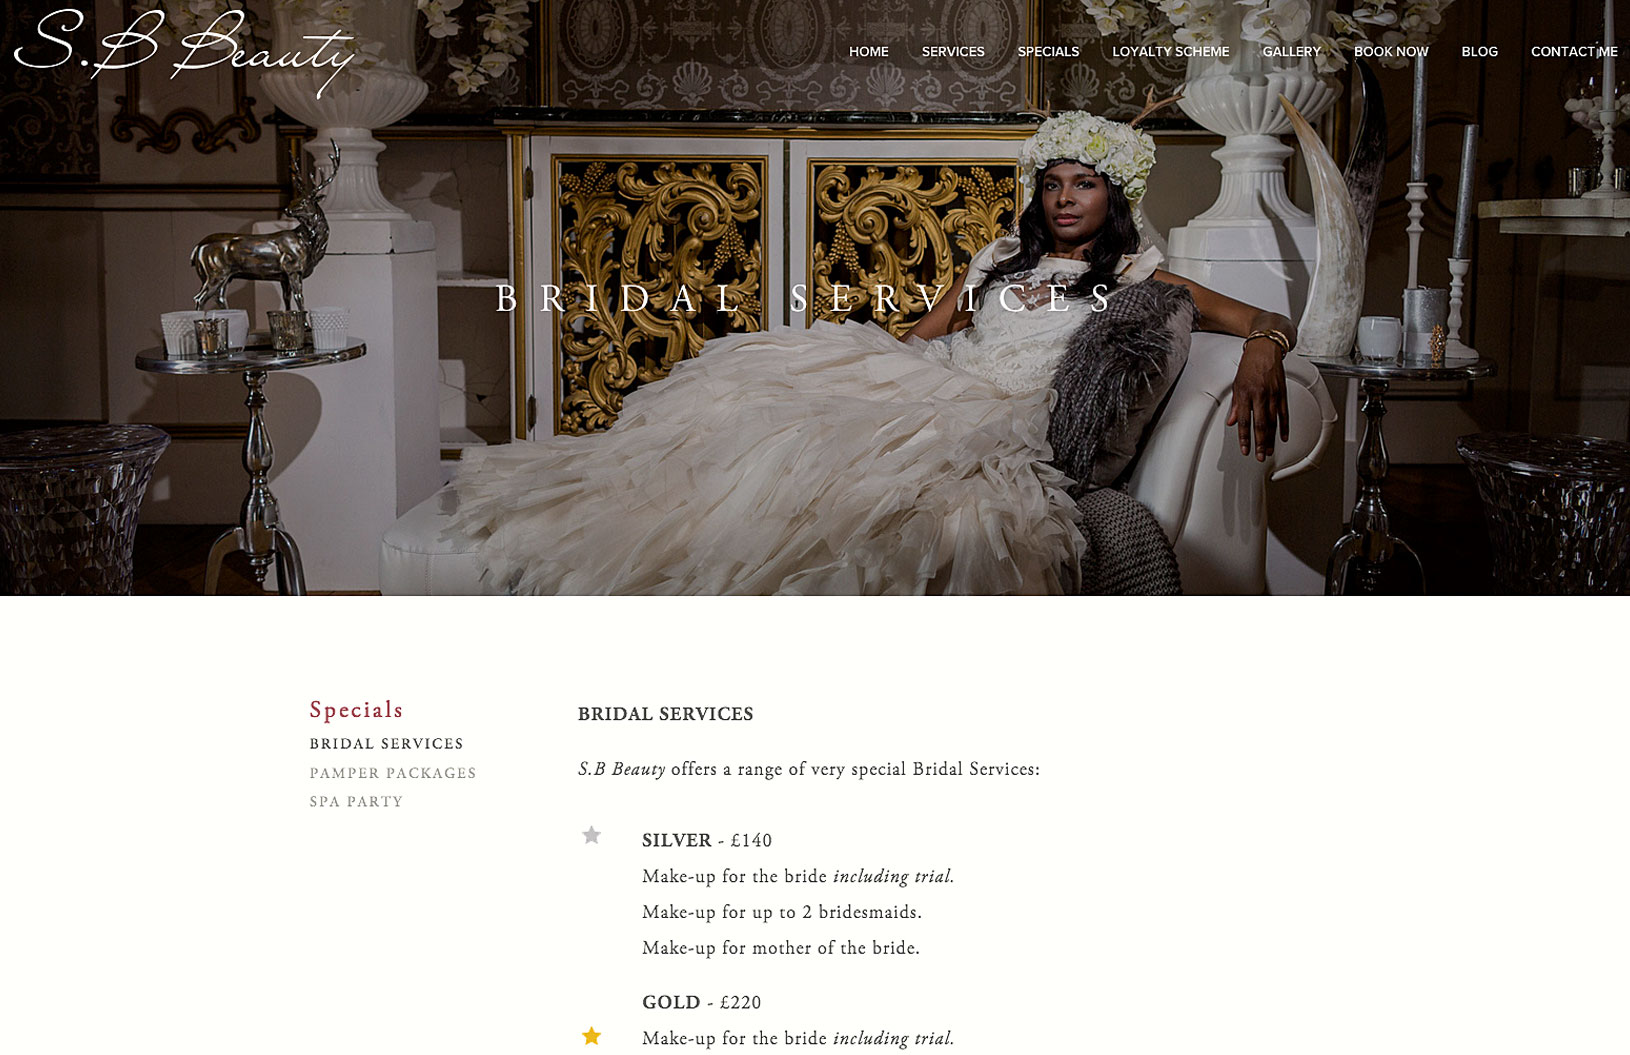 bridal make-up page for beauty salon with image of a bride in a sumptuous bedroom